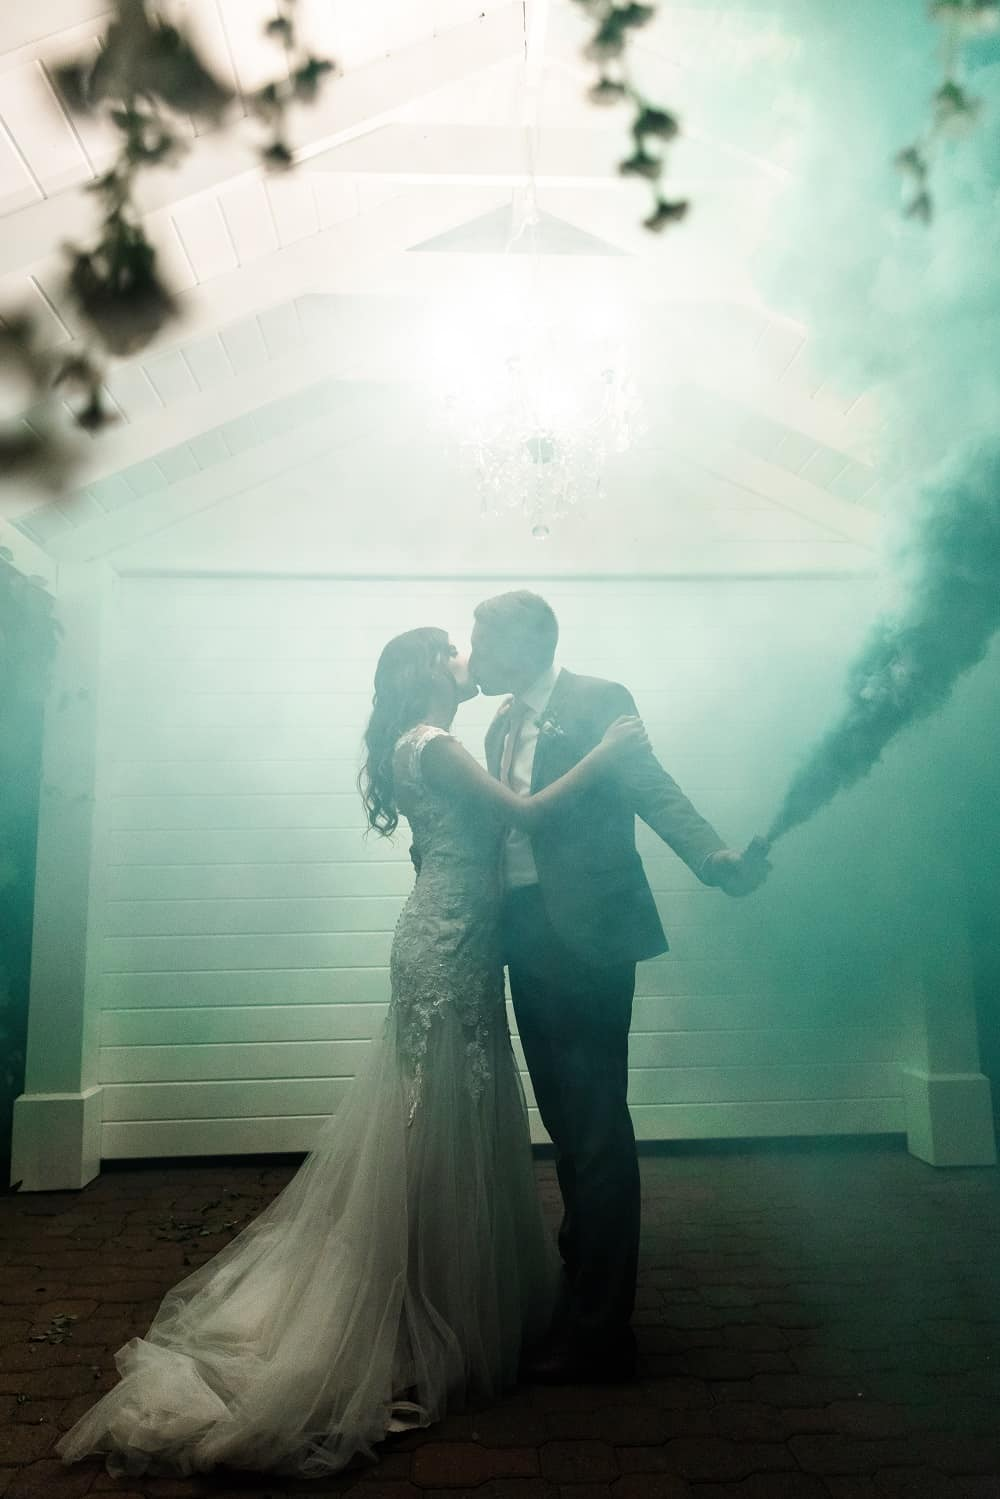 dramatic wedding shot